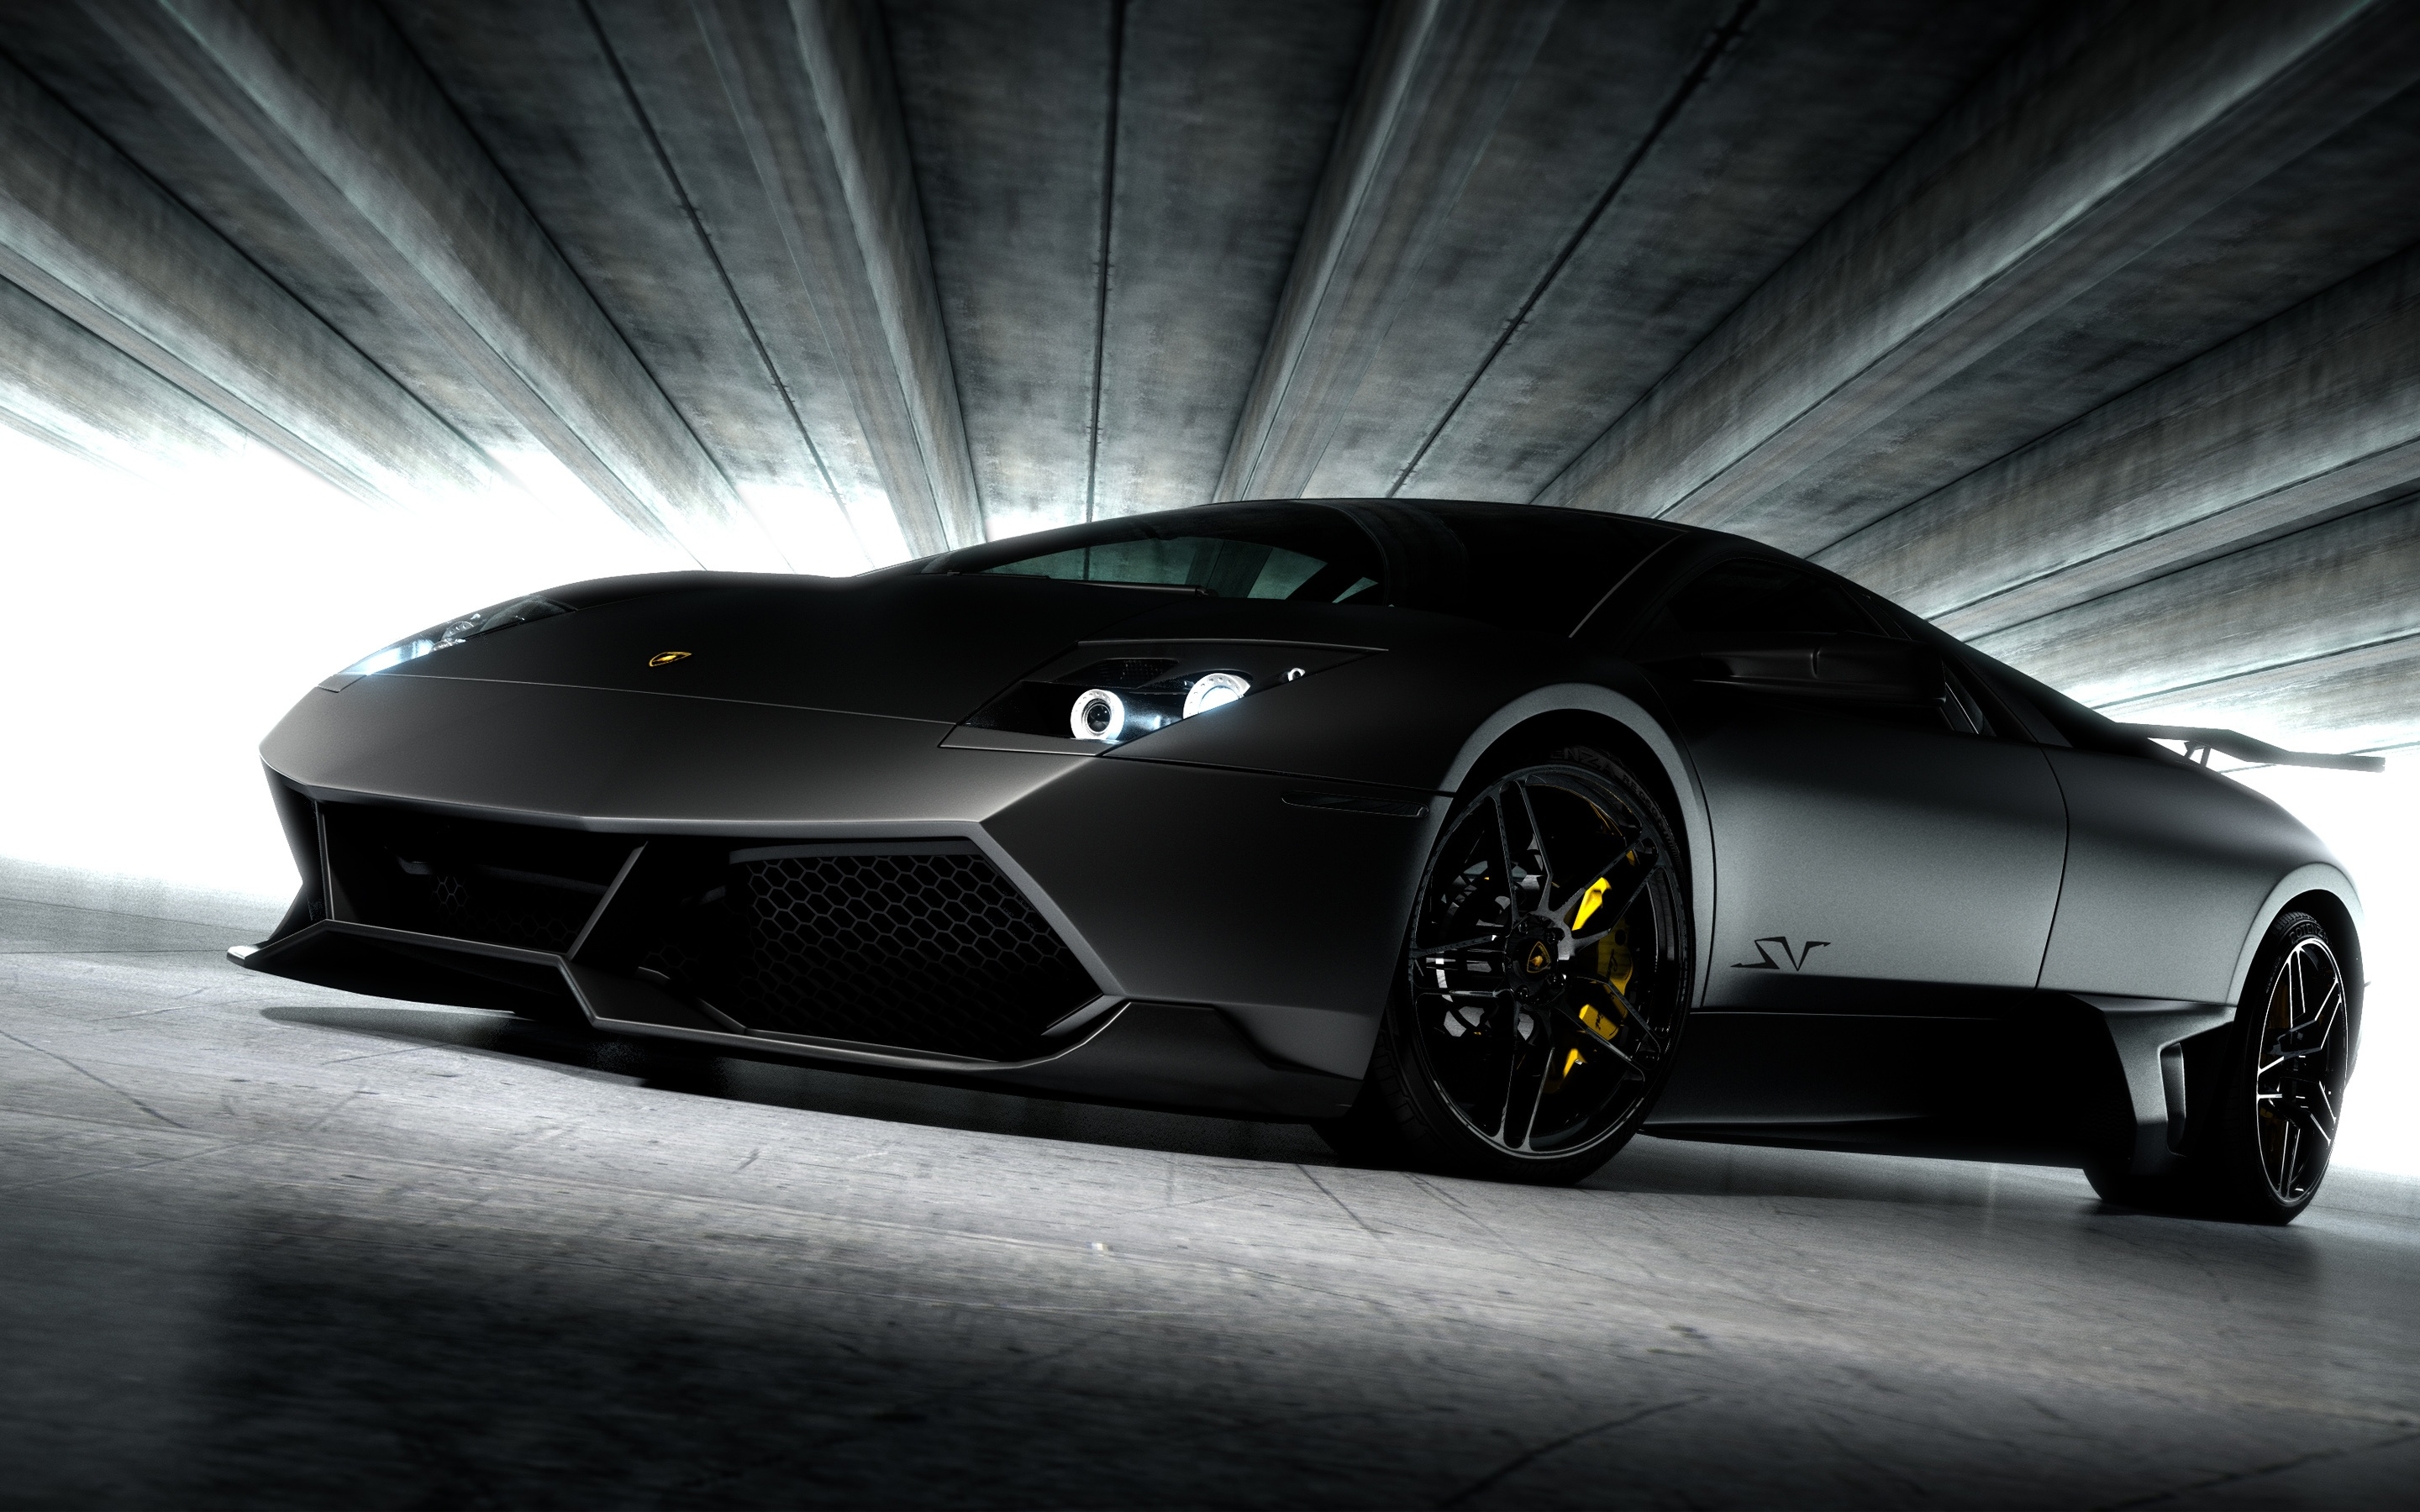 lamborghini wallpaper | 2880x1800 | #48043